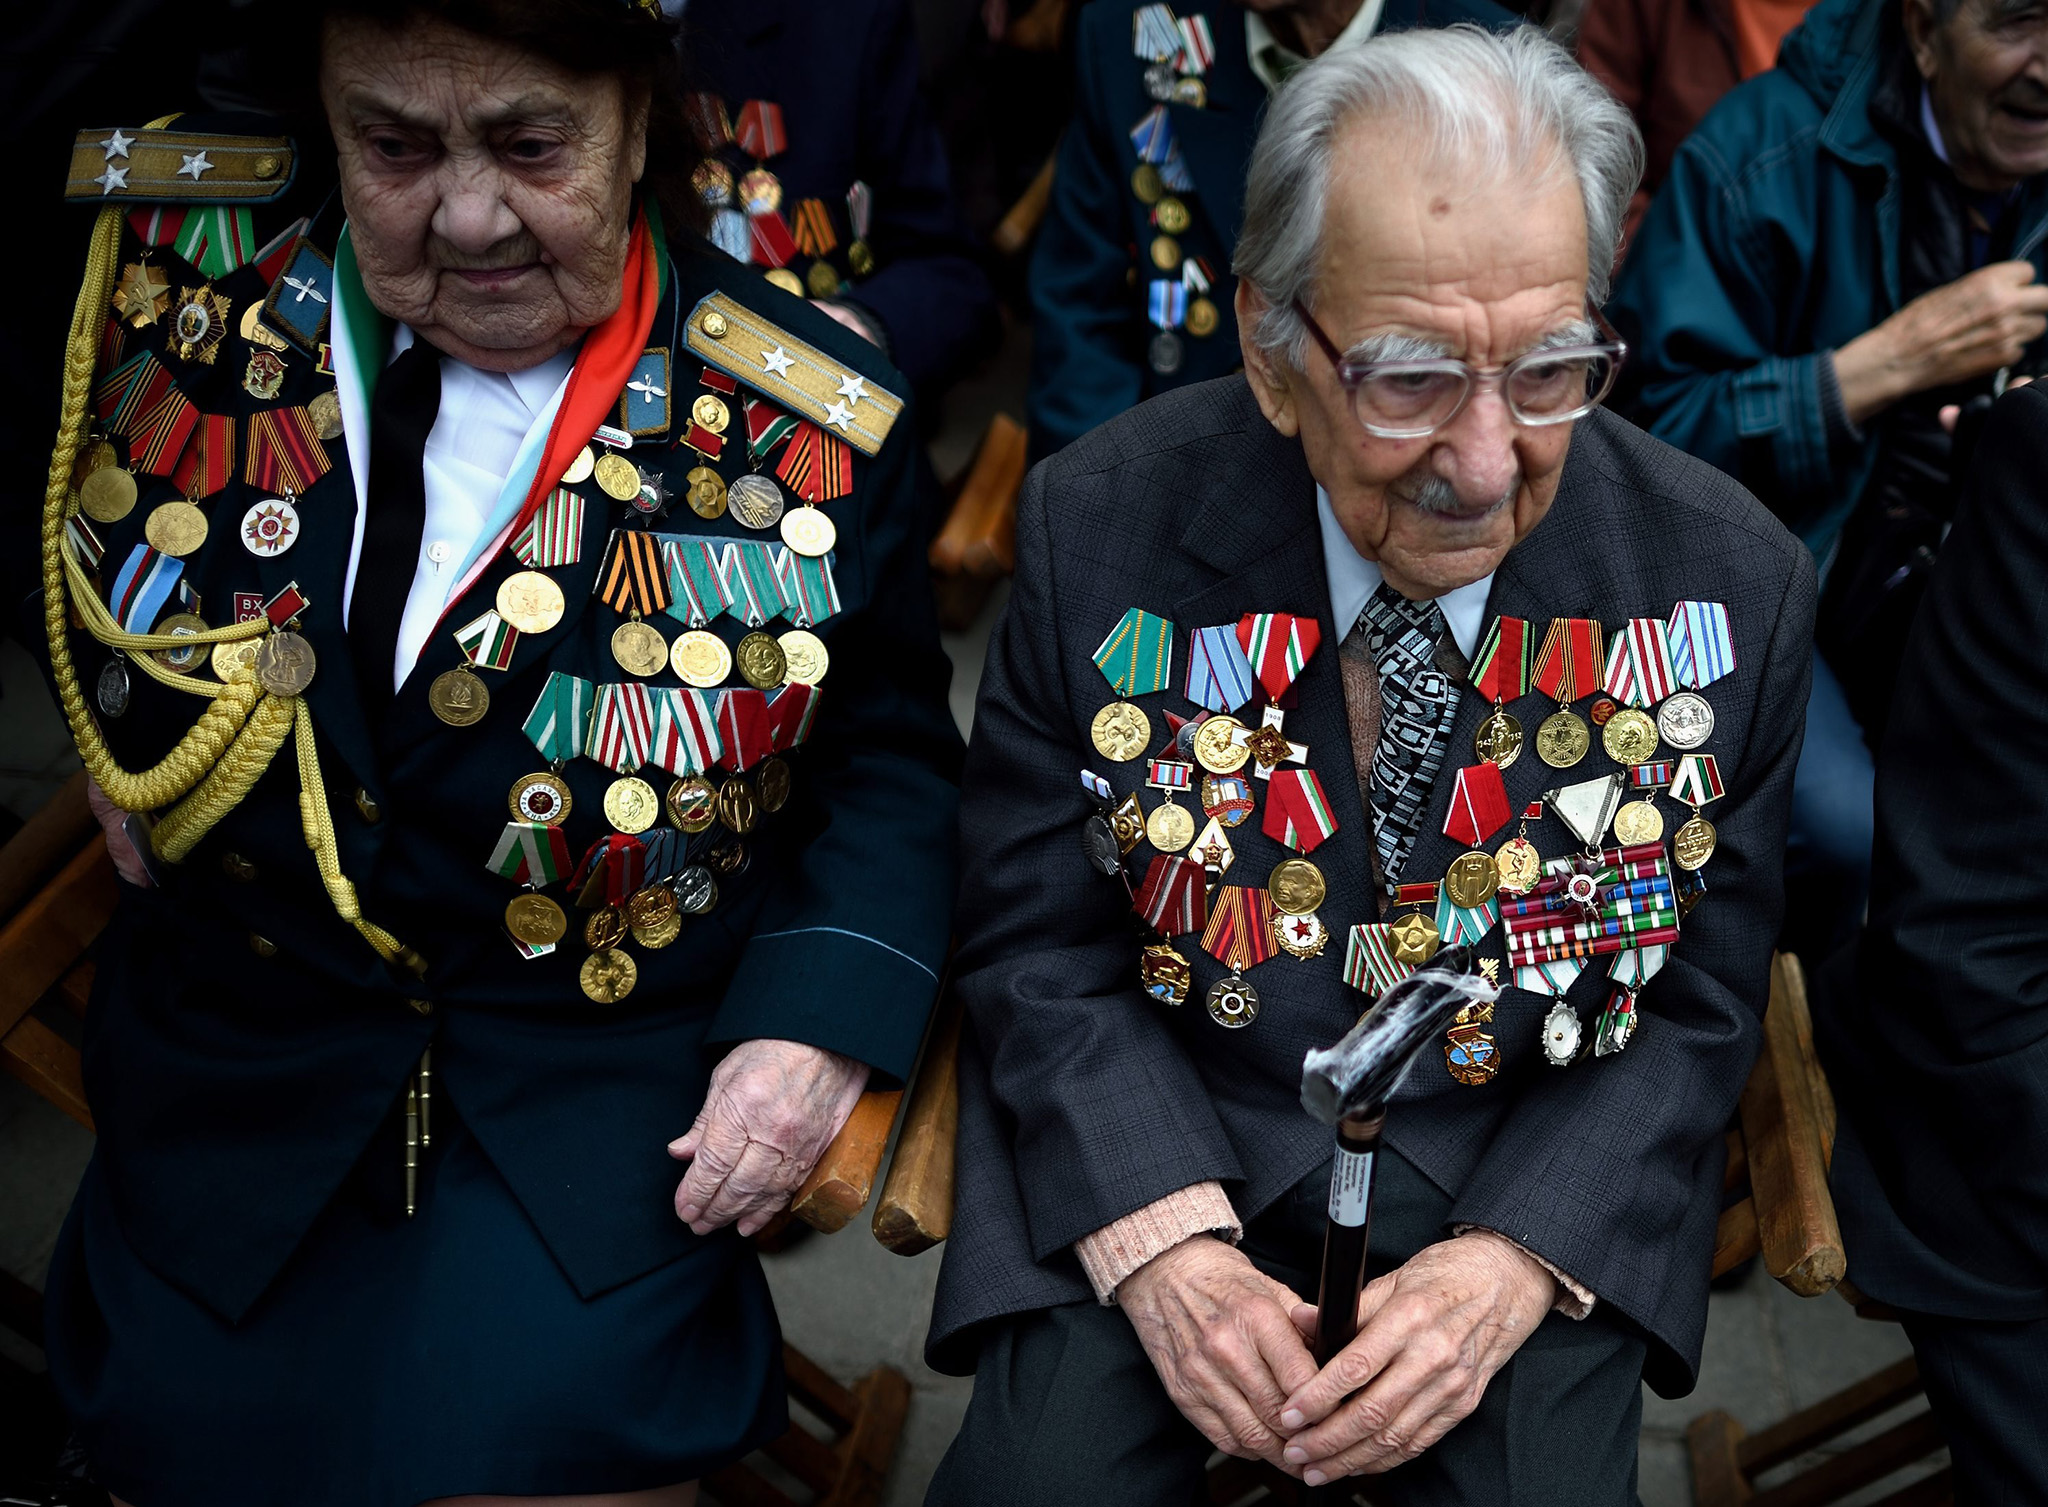 Bulgarian veterans from World War II  attend a military parade at the Alexander Batemberg Square in Sofia, Bulgaria